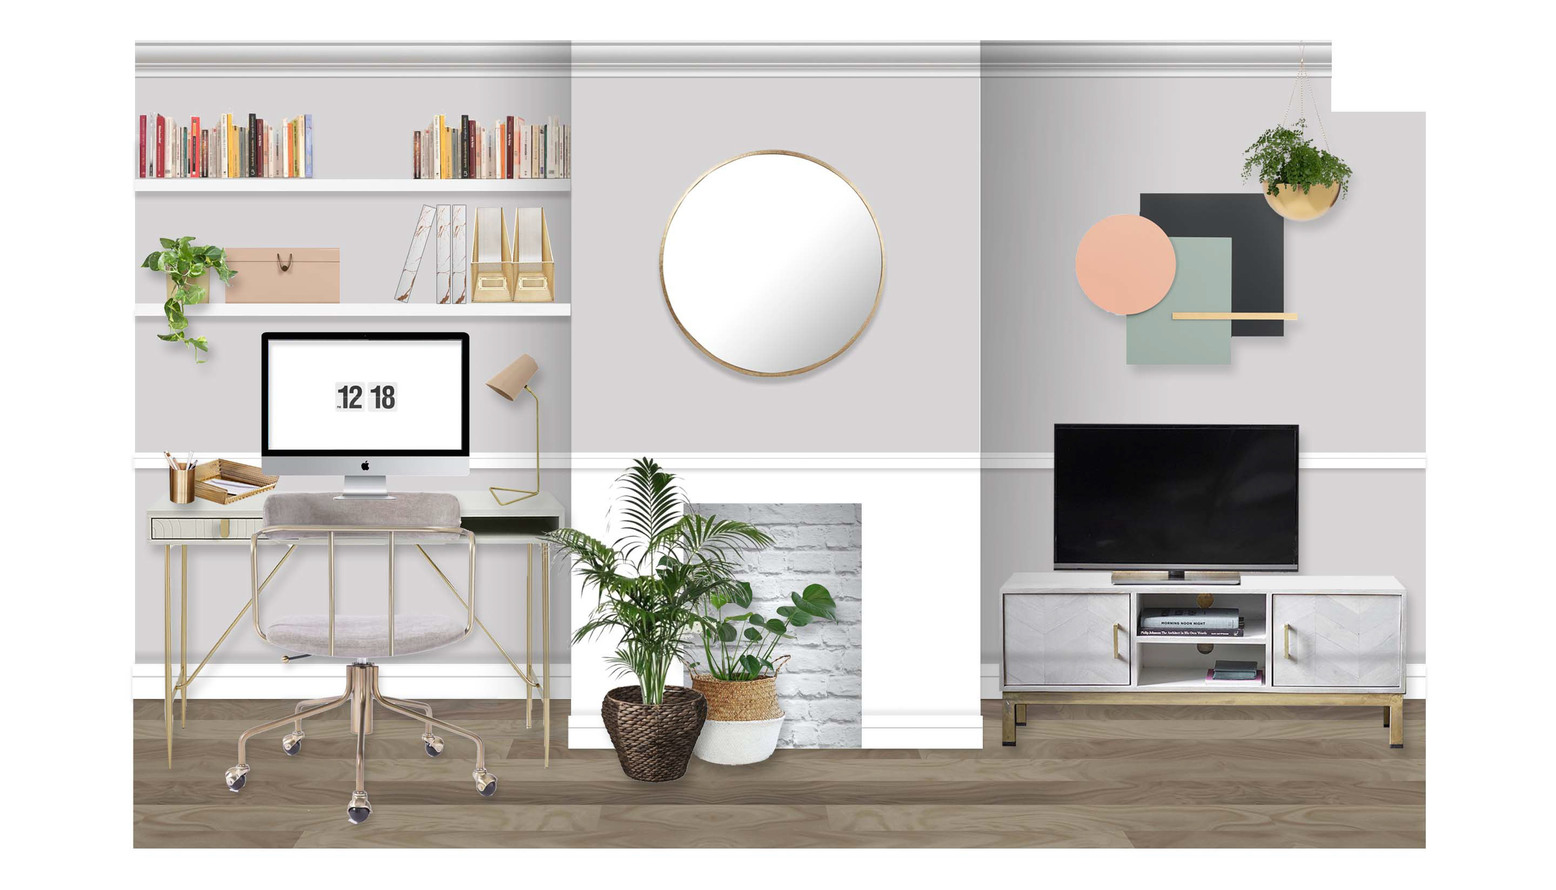 Final design  home office visual